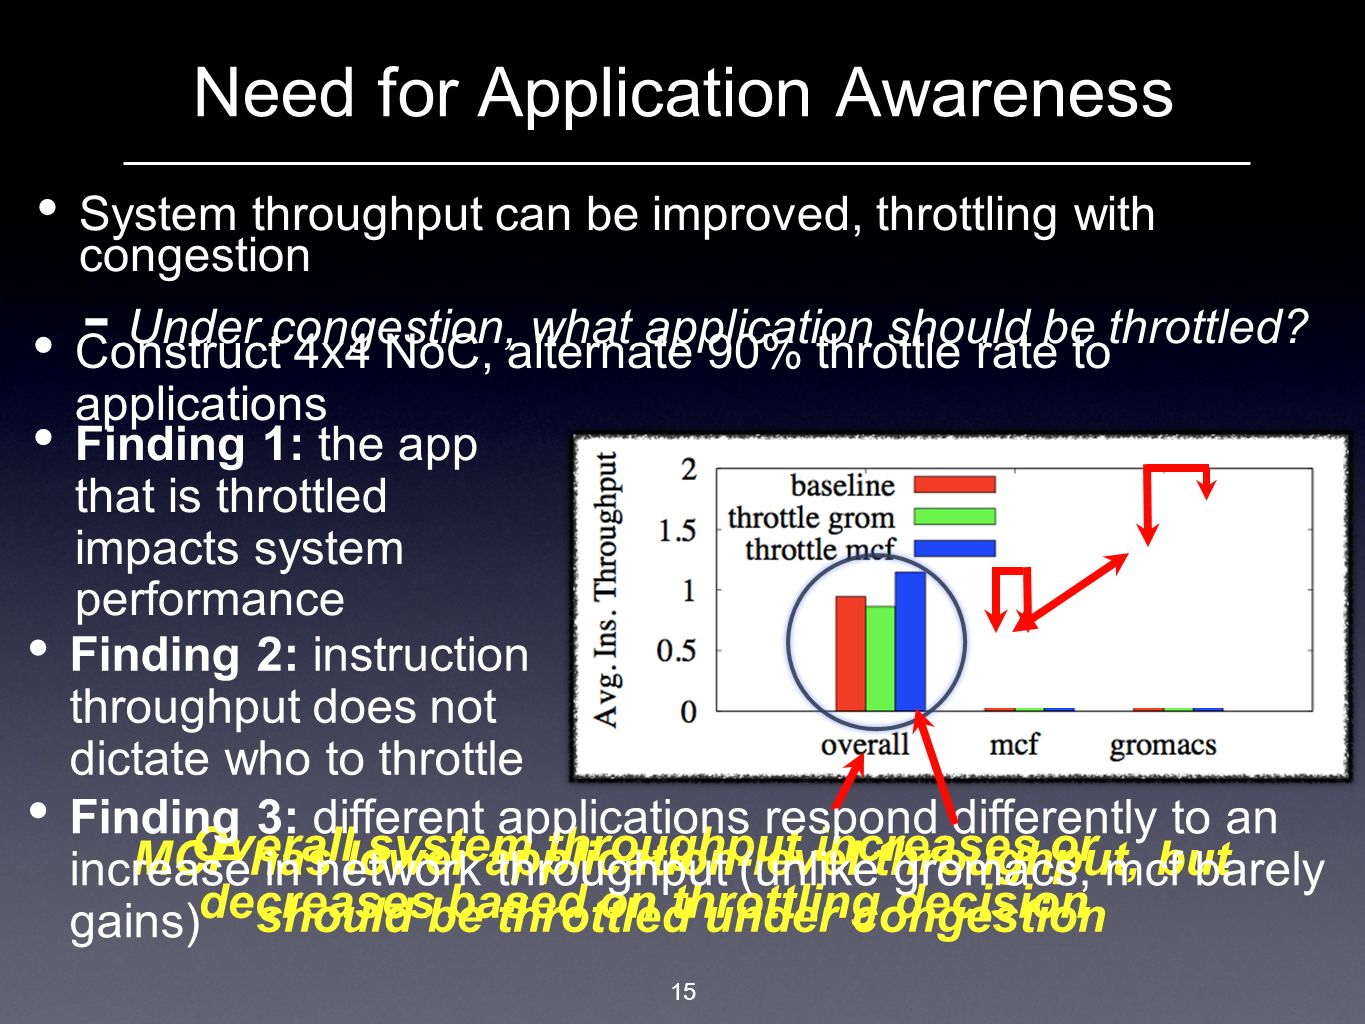 15 Need for Application Awareness System throughput can be improved, throttling with congestion Under congestion, what application should be throttled